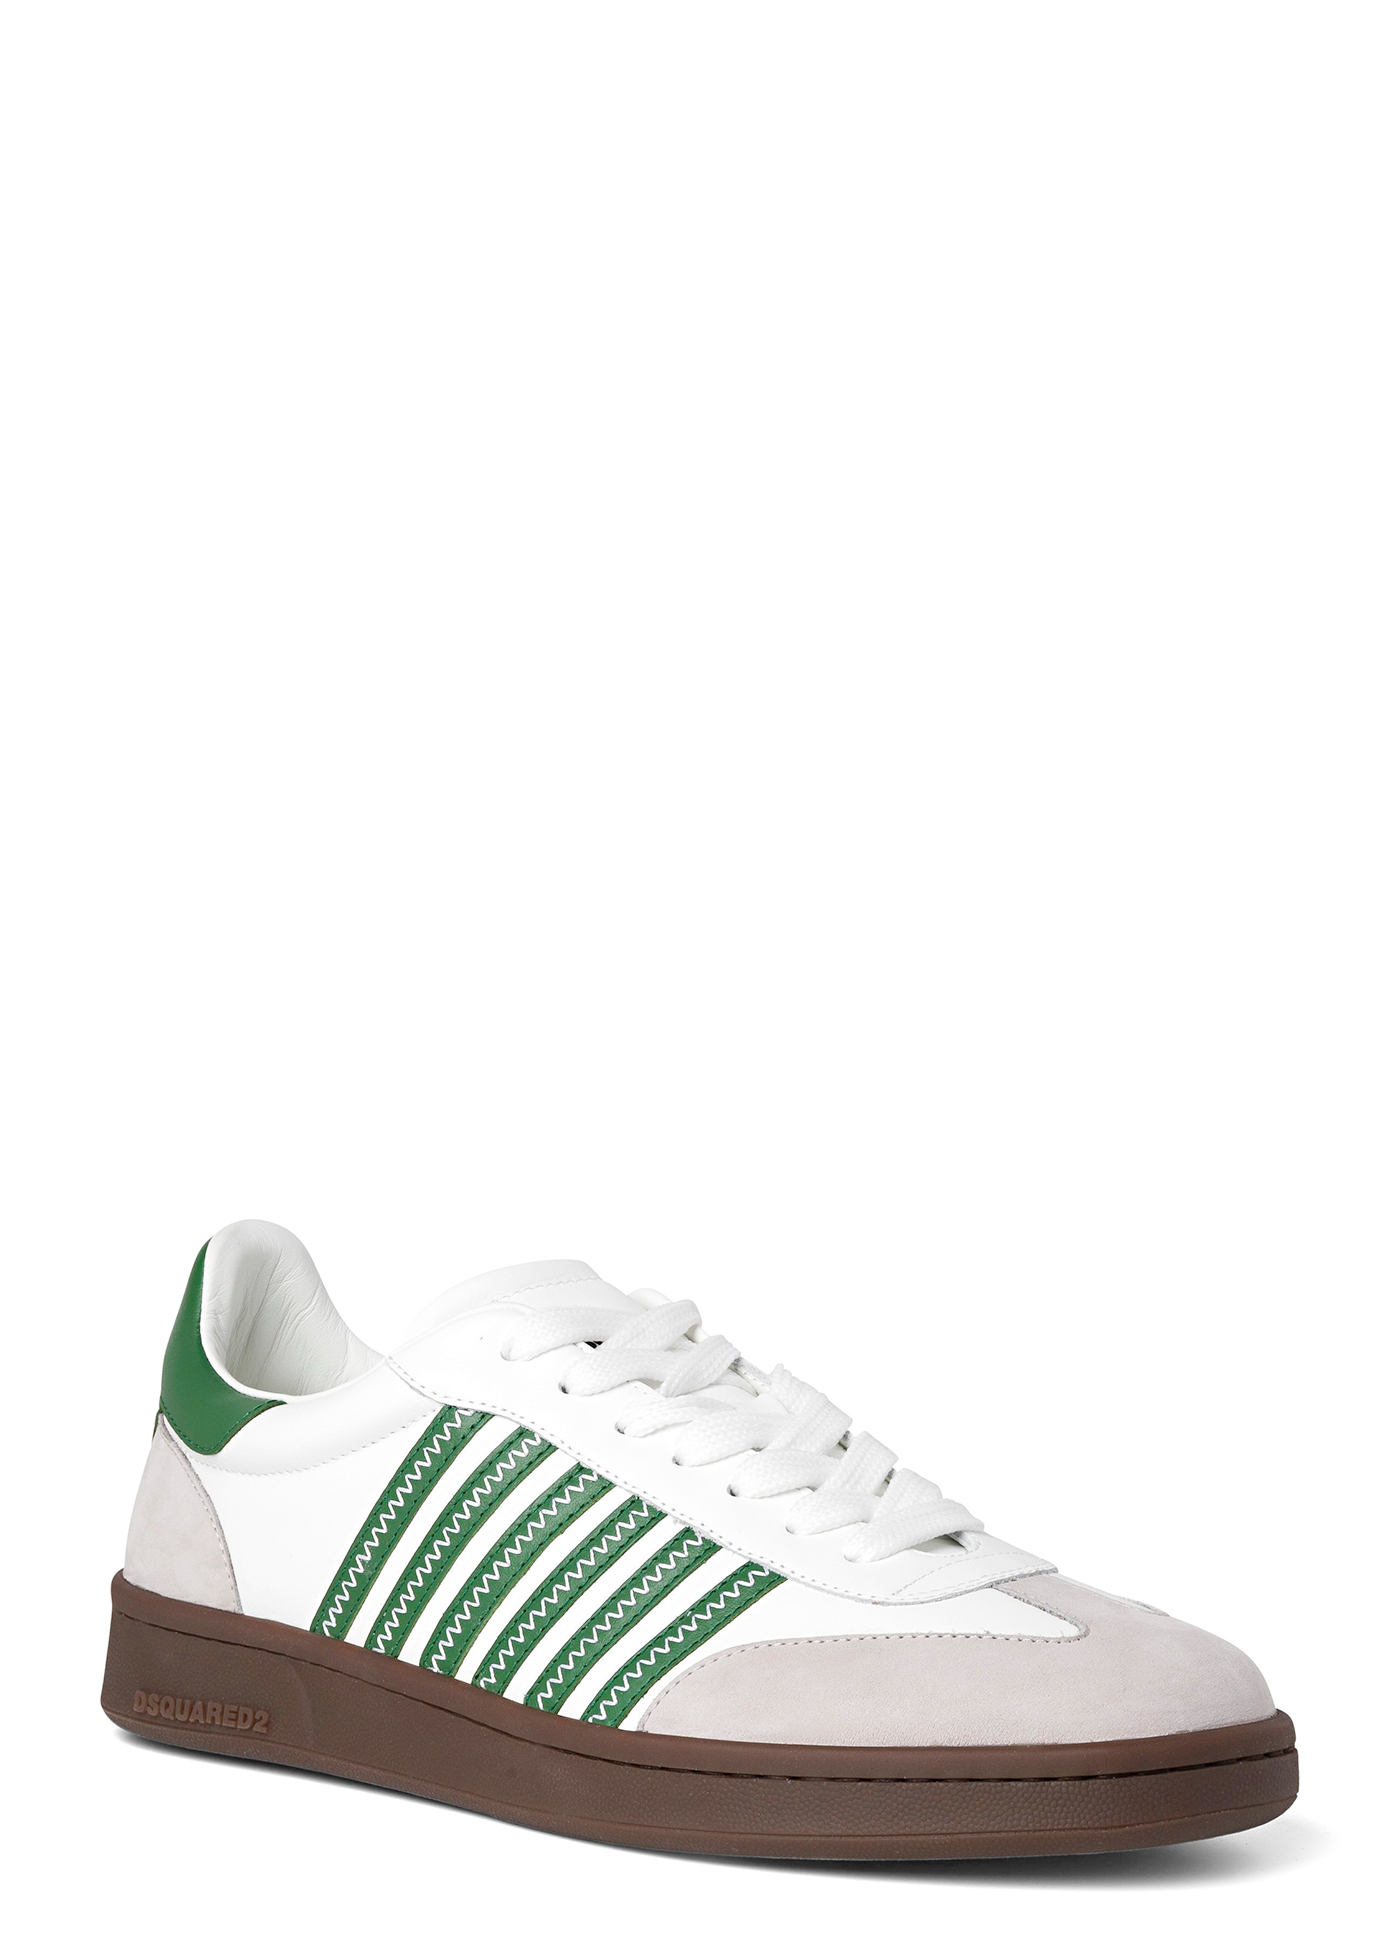 THE CANADIAN SNEAKERS W/ STRIPES image number 1